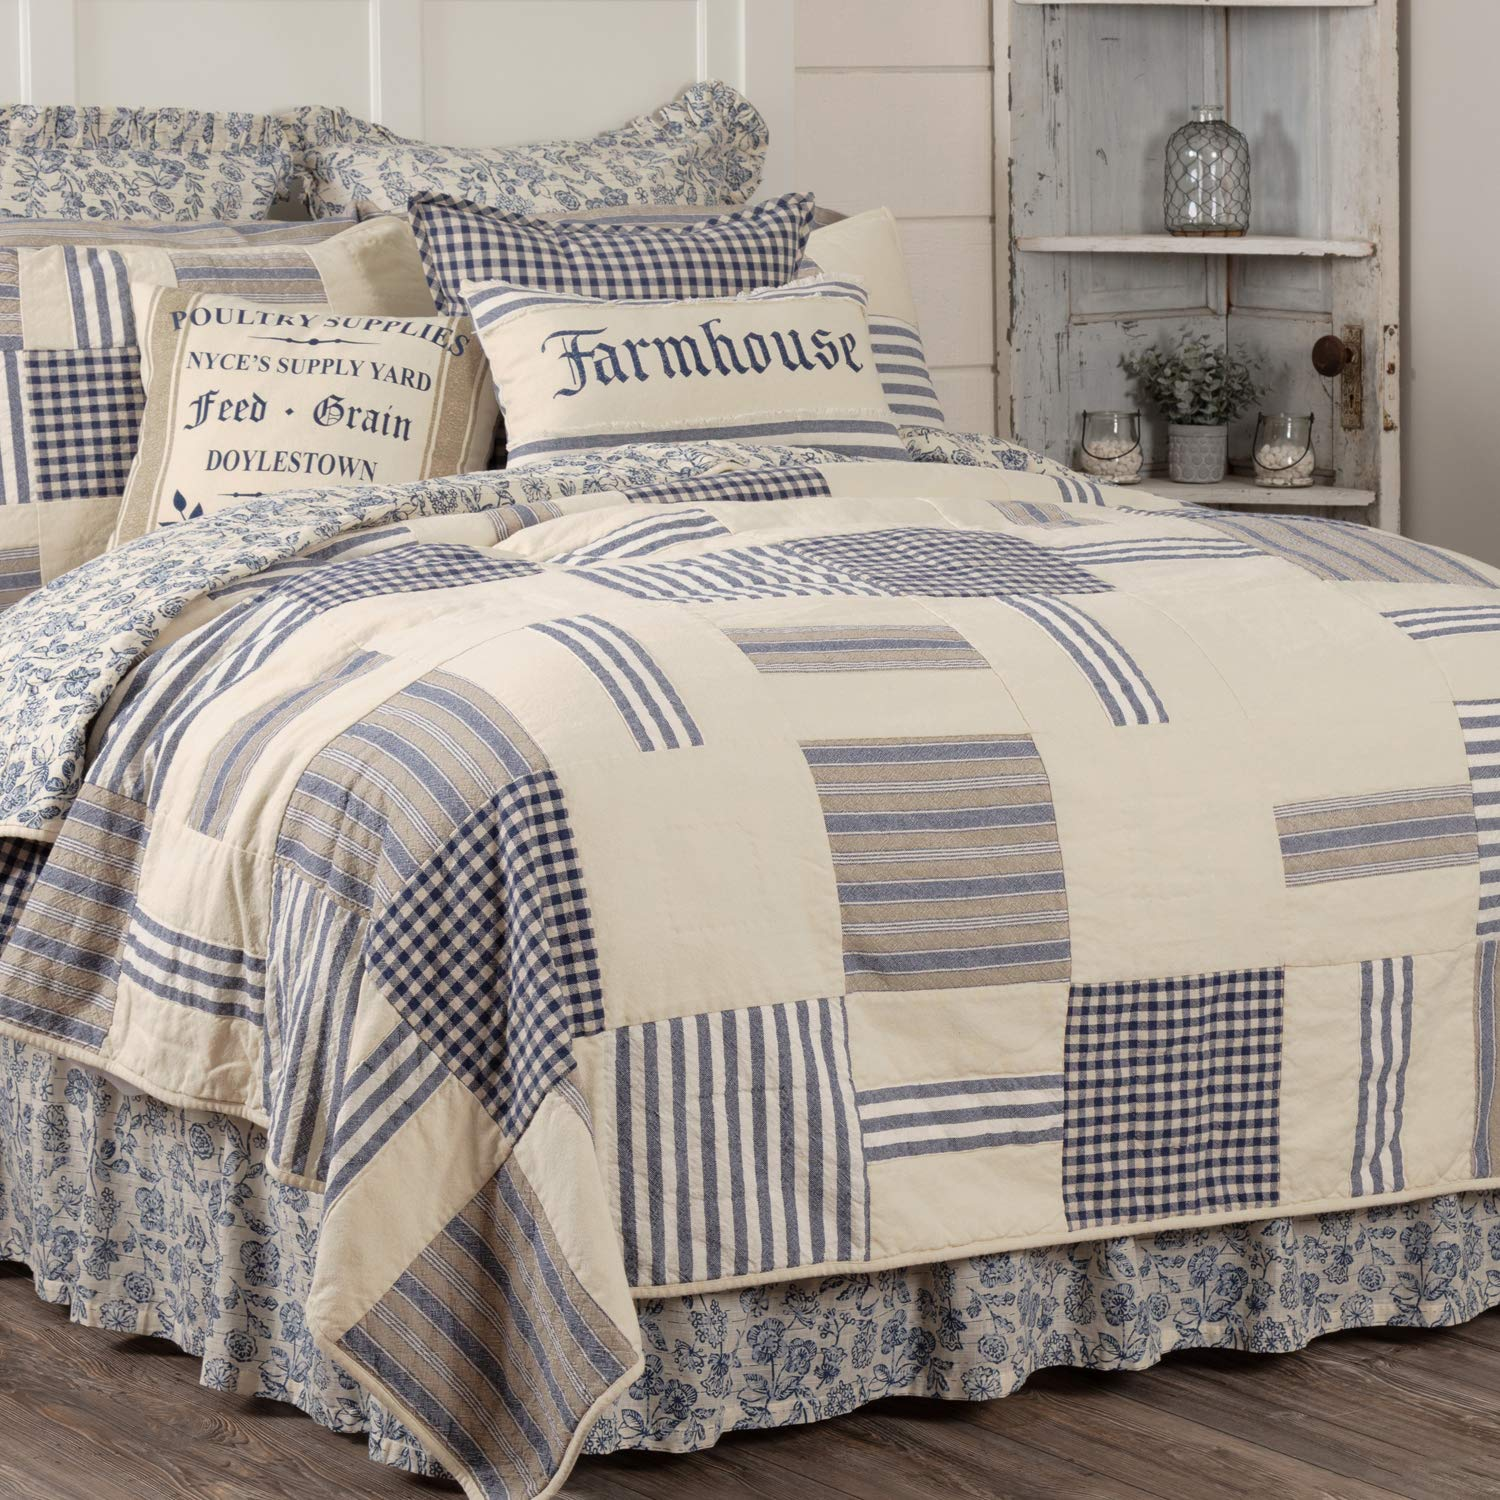 Piper Classics Doylestown Blue Queen Patchwork Quilt, Gingham Checks, Grain Sack & Ticking Stripes, Reversible to Floral Print, Blue & Cream Vintage Farmhouse Bedding, Rustic Country, Cottage Bedroom